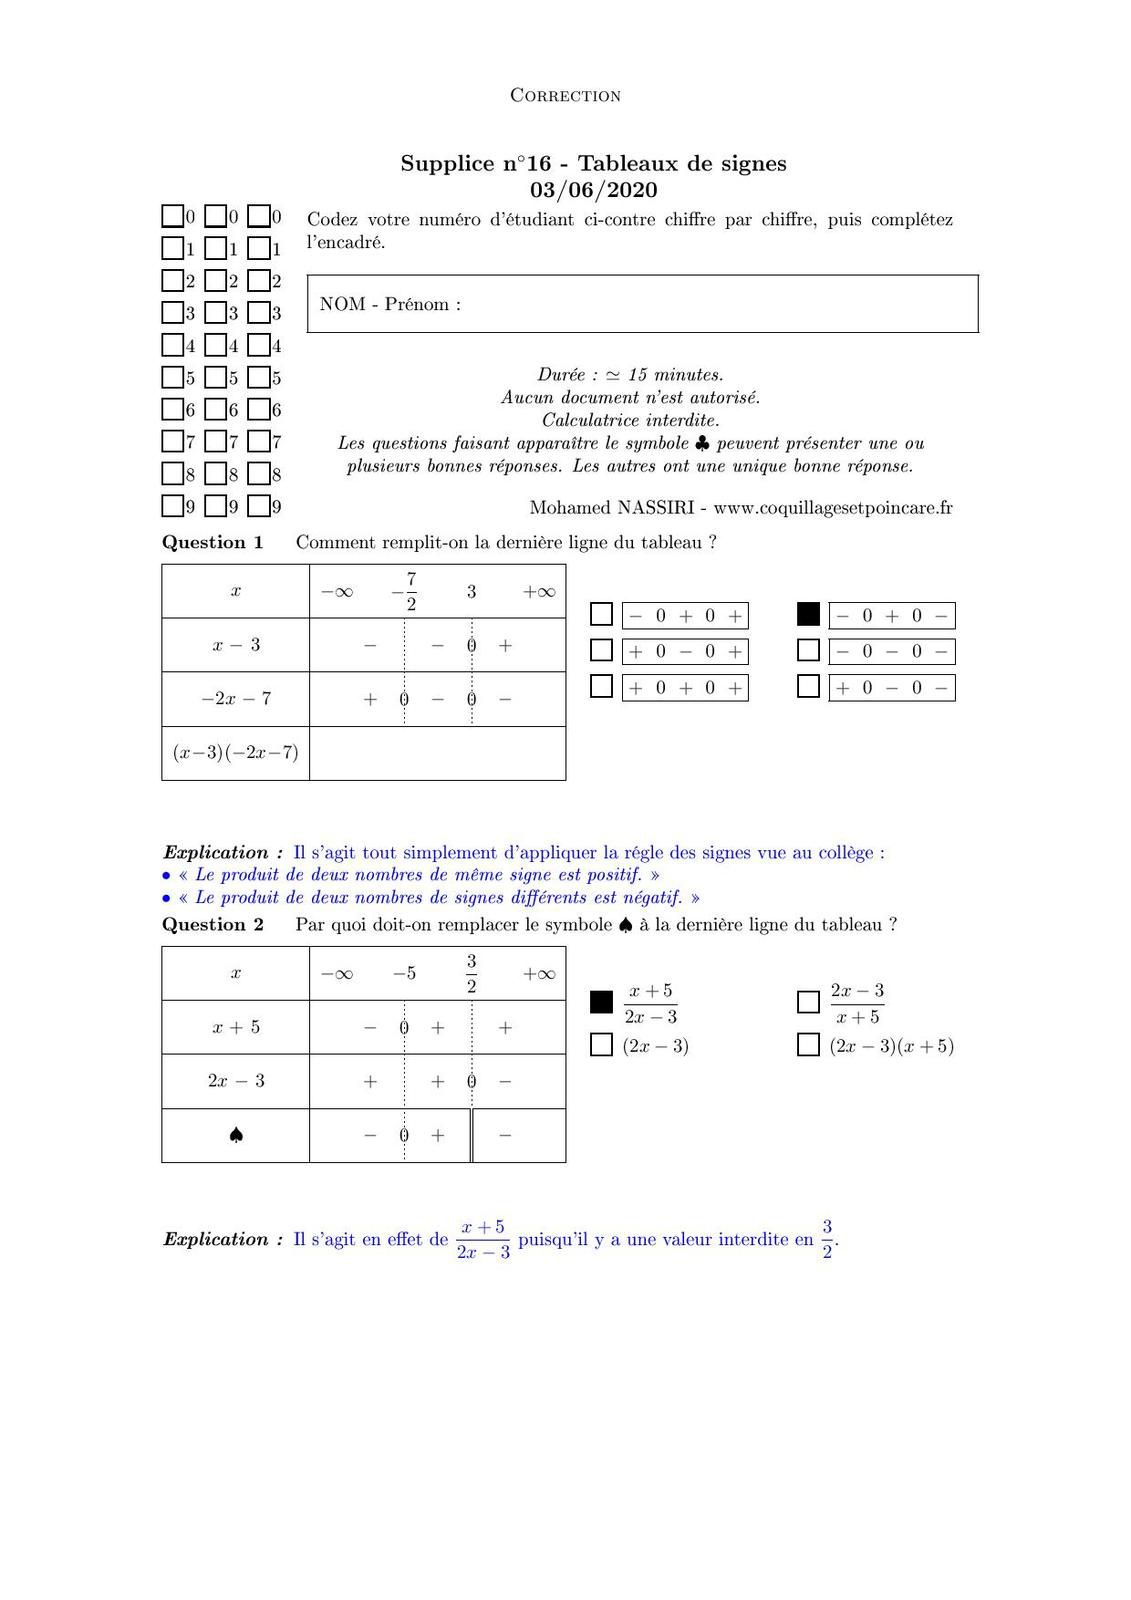 Supplice n°16-Correction Supplice n°16